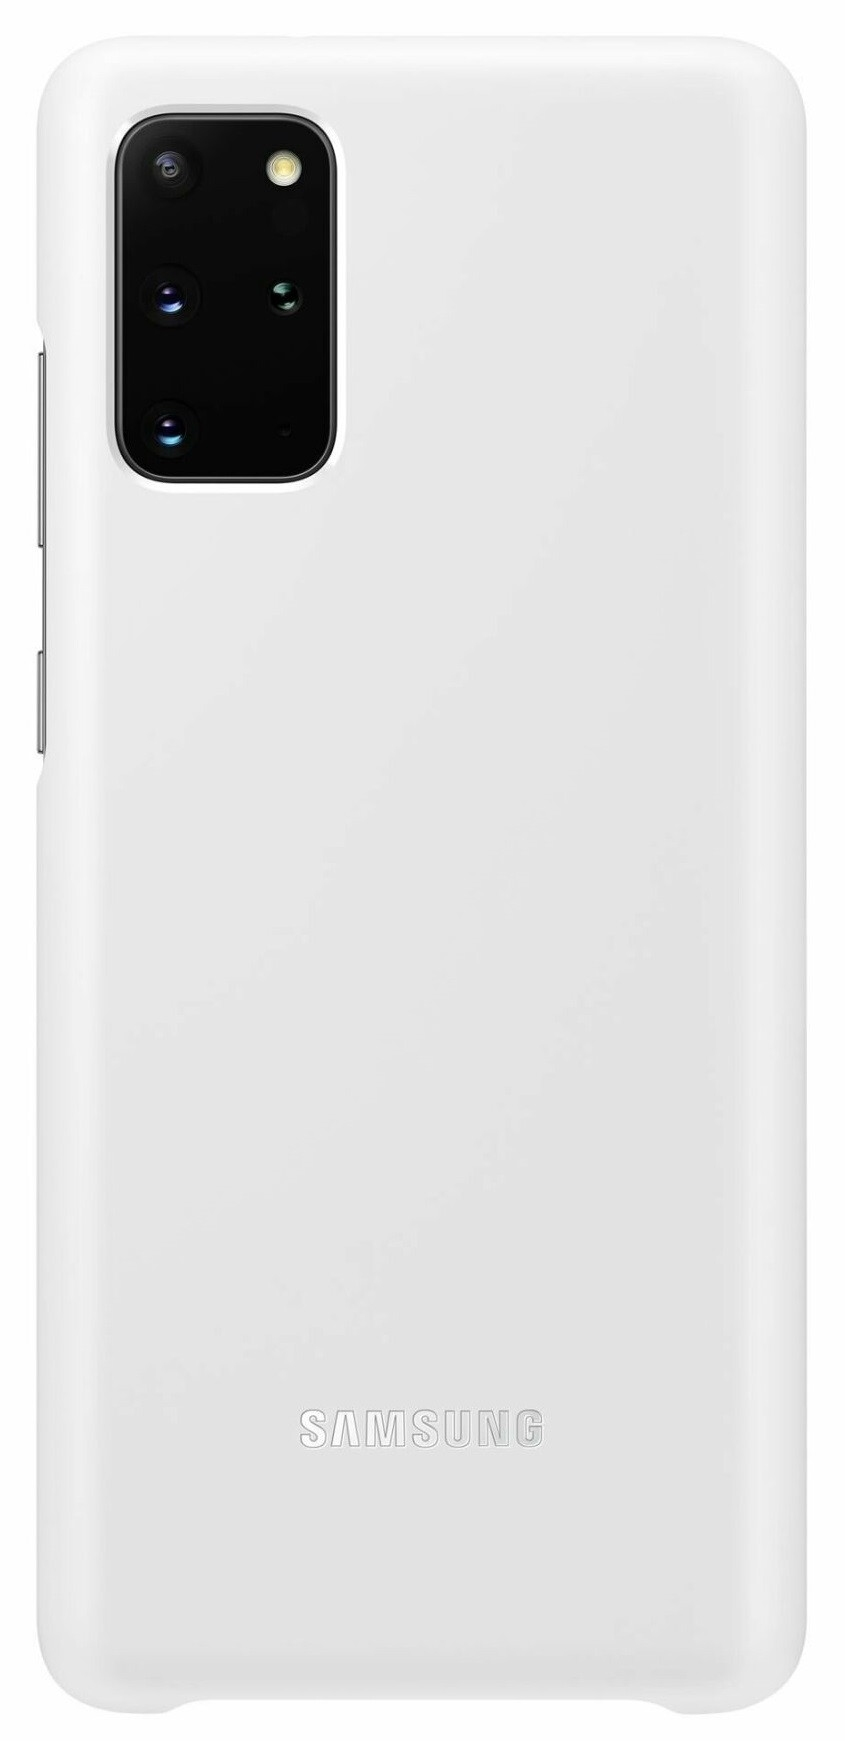 Панель Samsung LED Cover для Samsung Galaxy S20 Plus (EF-KG985CWEGRU) White от Територія твоєї техніки - 2